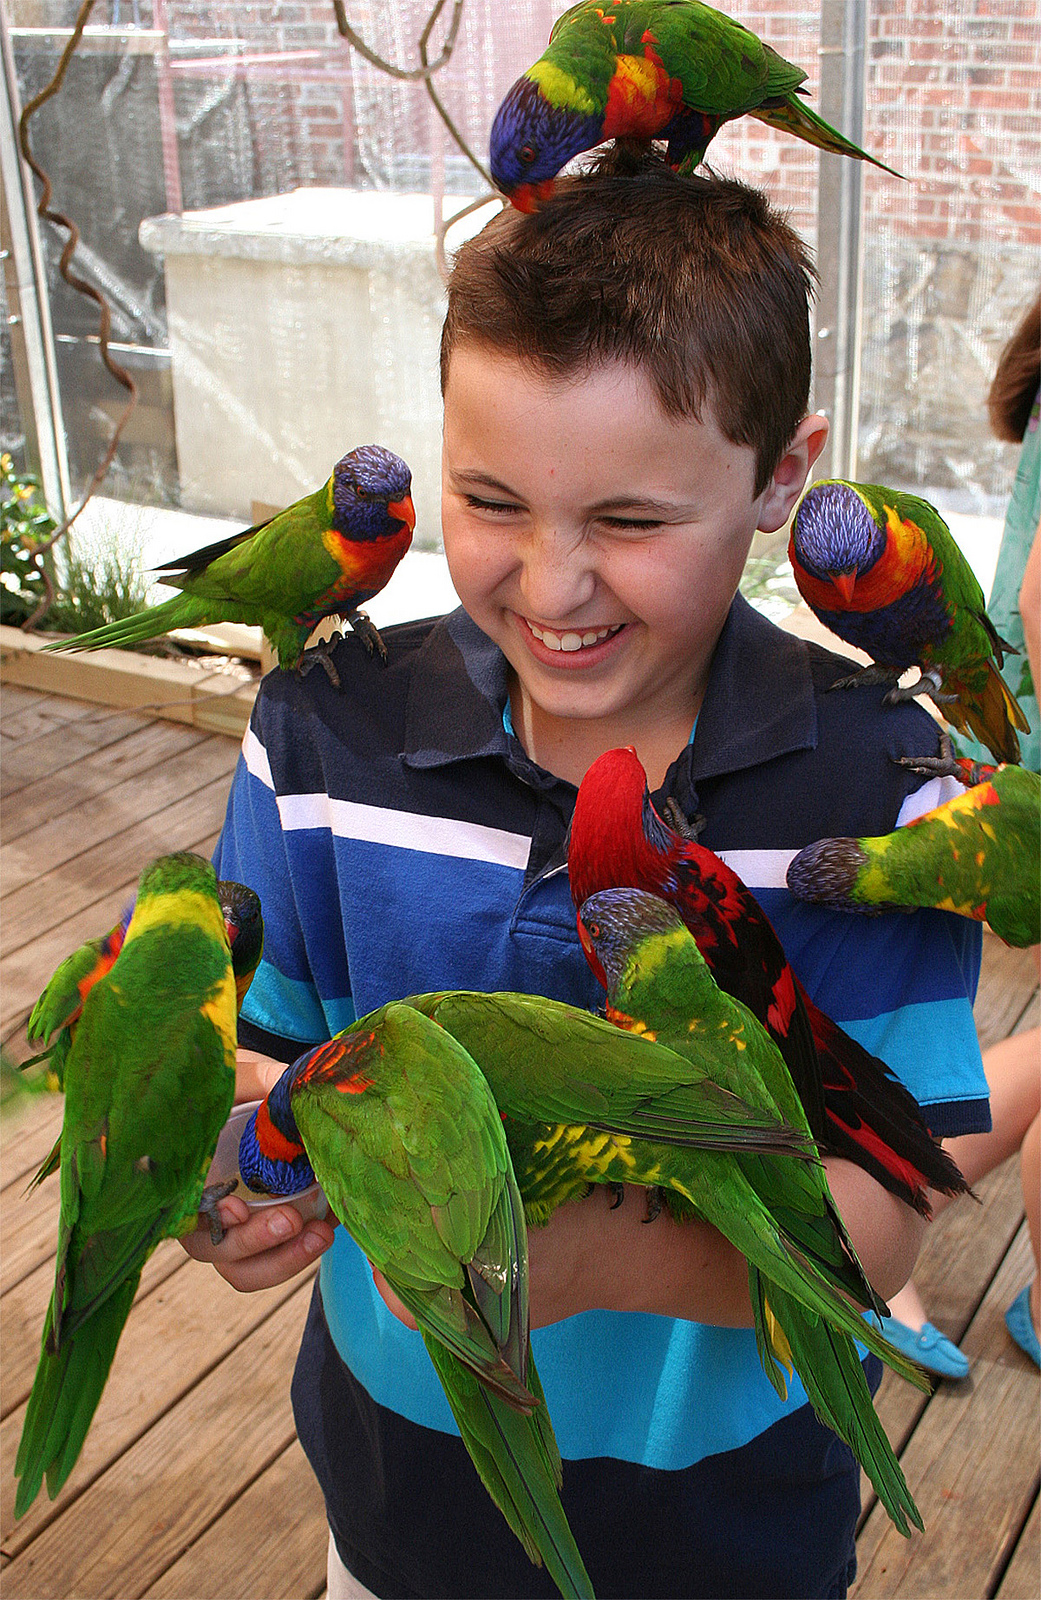 Stopping by the kid-friendly lorikeet aviary was part of intern Emilie Geissinger's duties at the Maritime Aquarium. Photograph courtesy of the Maritime Aquarium.